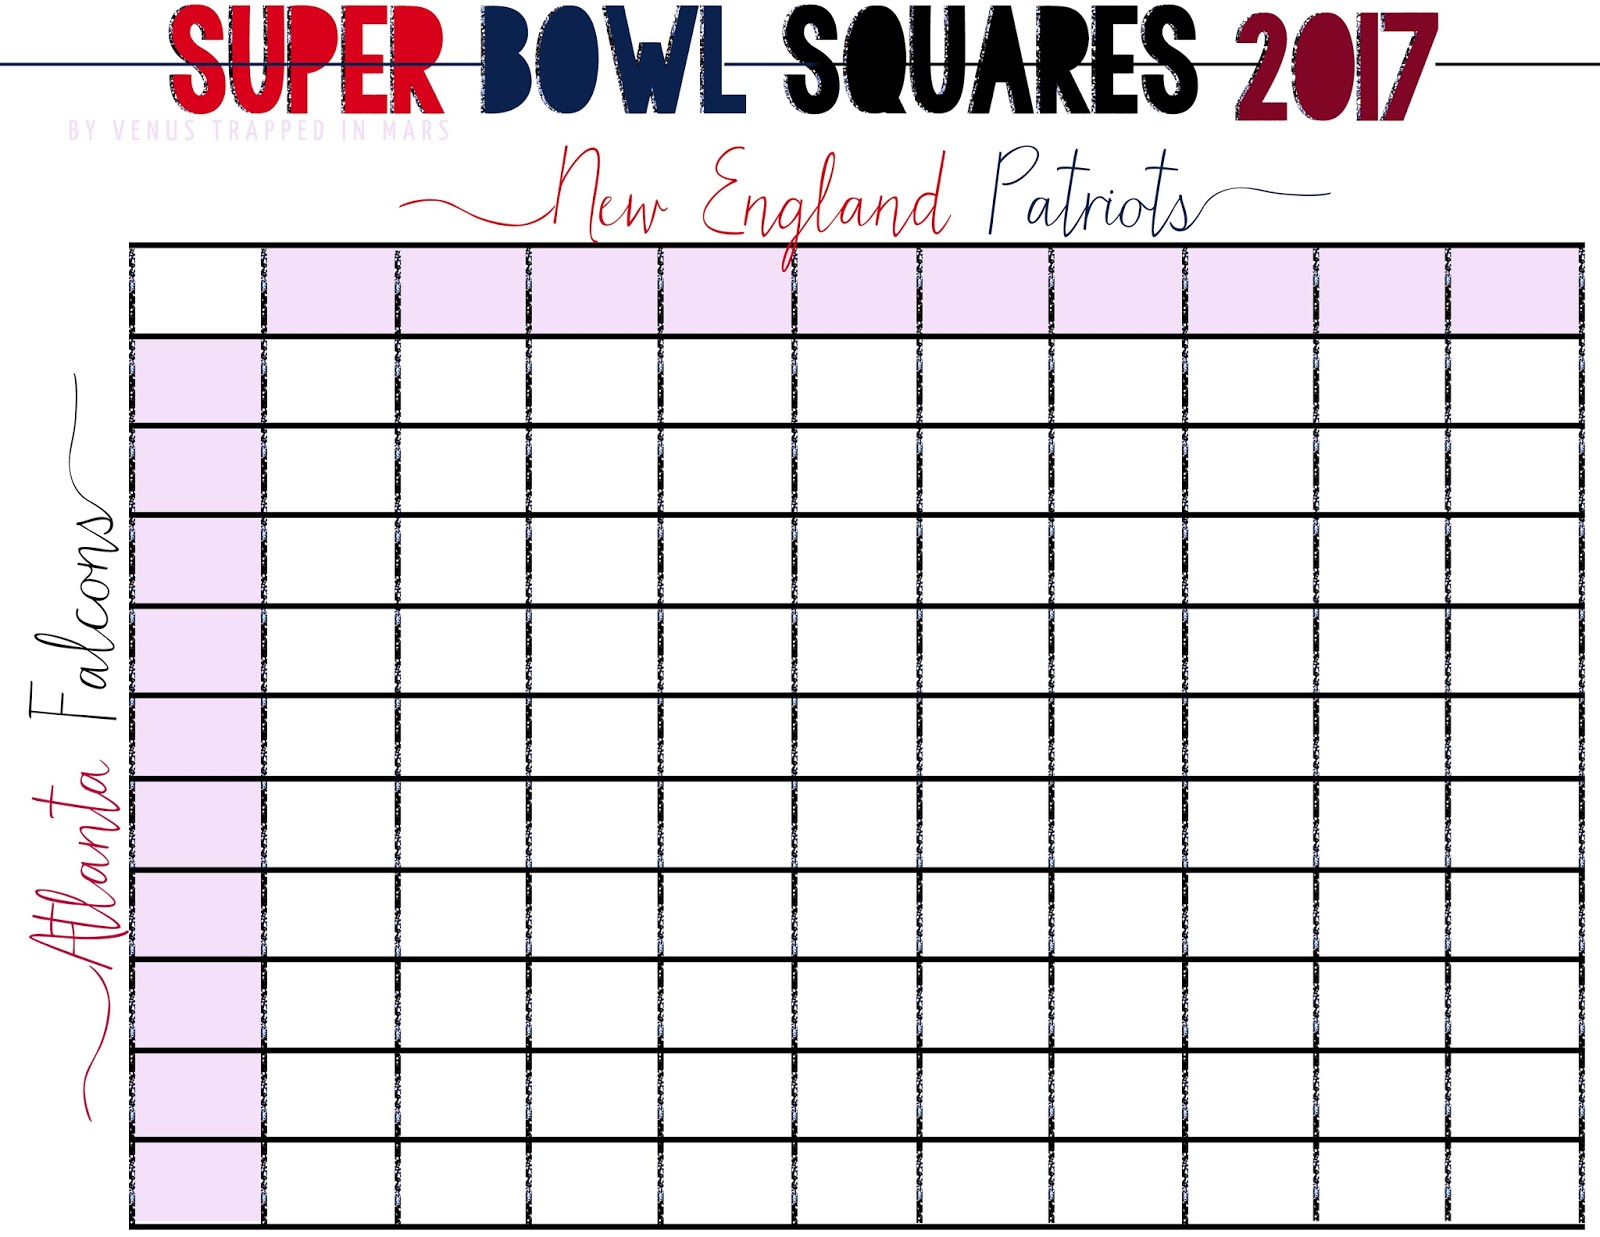 graphic relating to Superbowl Board Printable referred to as Tremendous Bowl Squares 2017 Venus Stuck within Mars Dallas